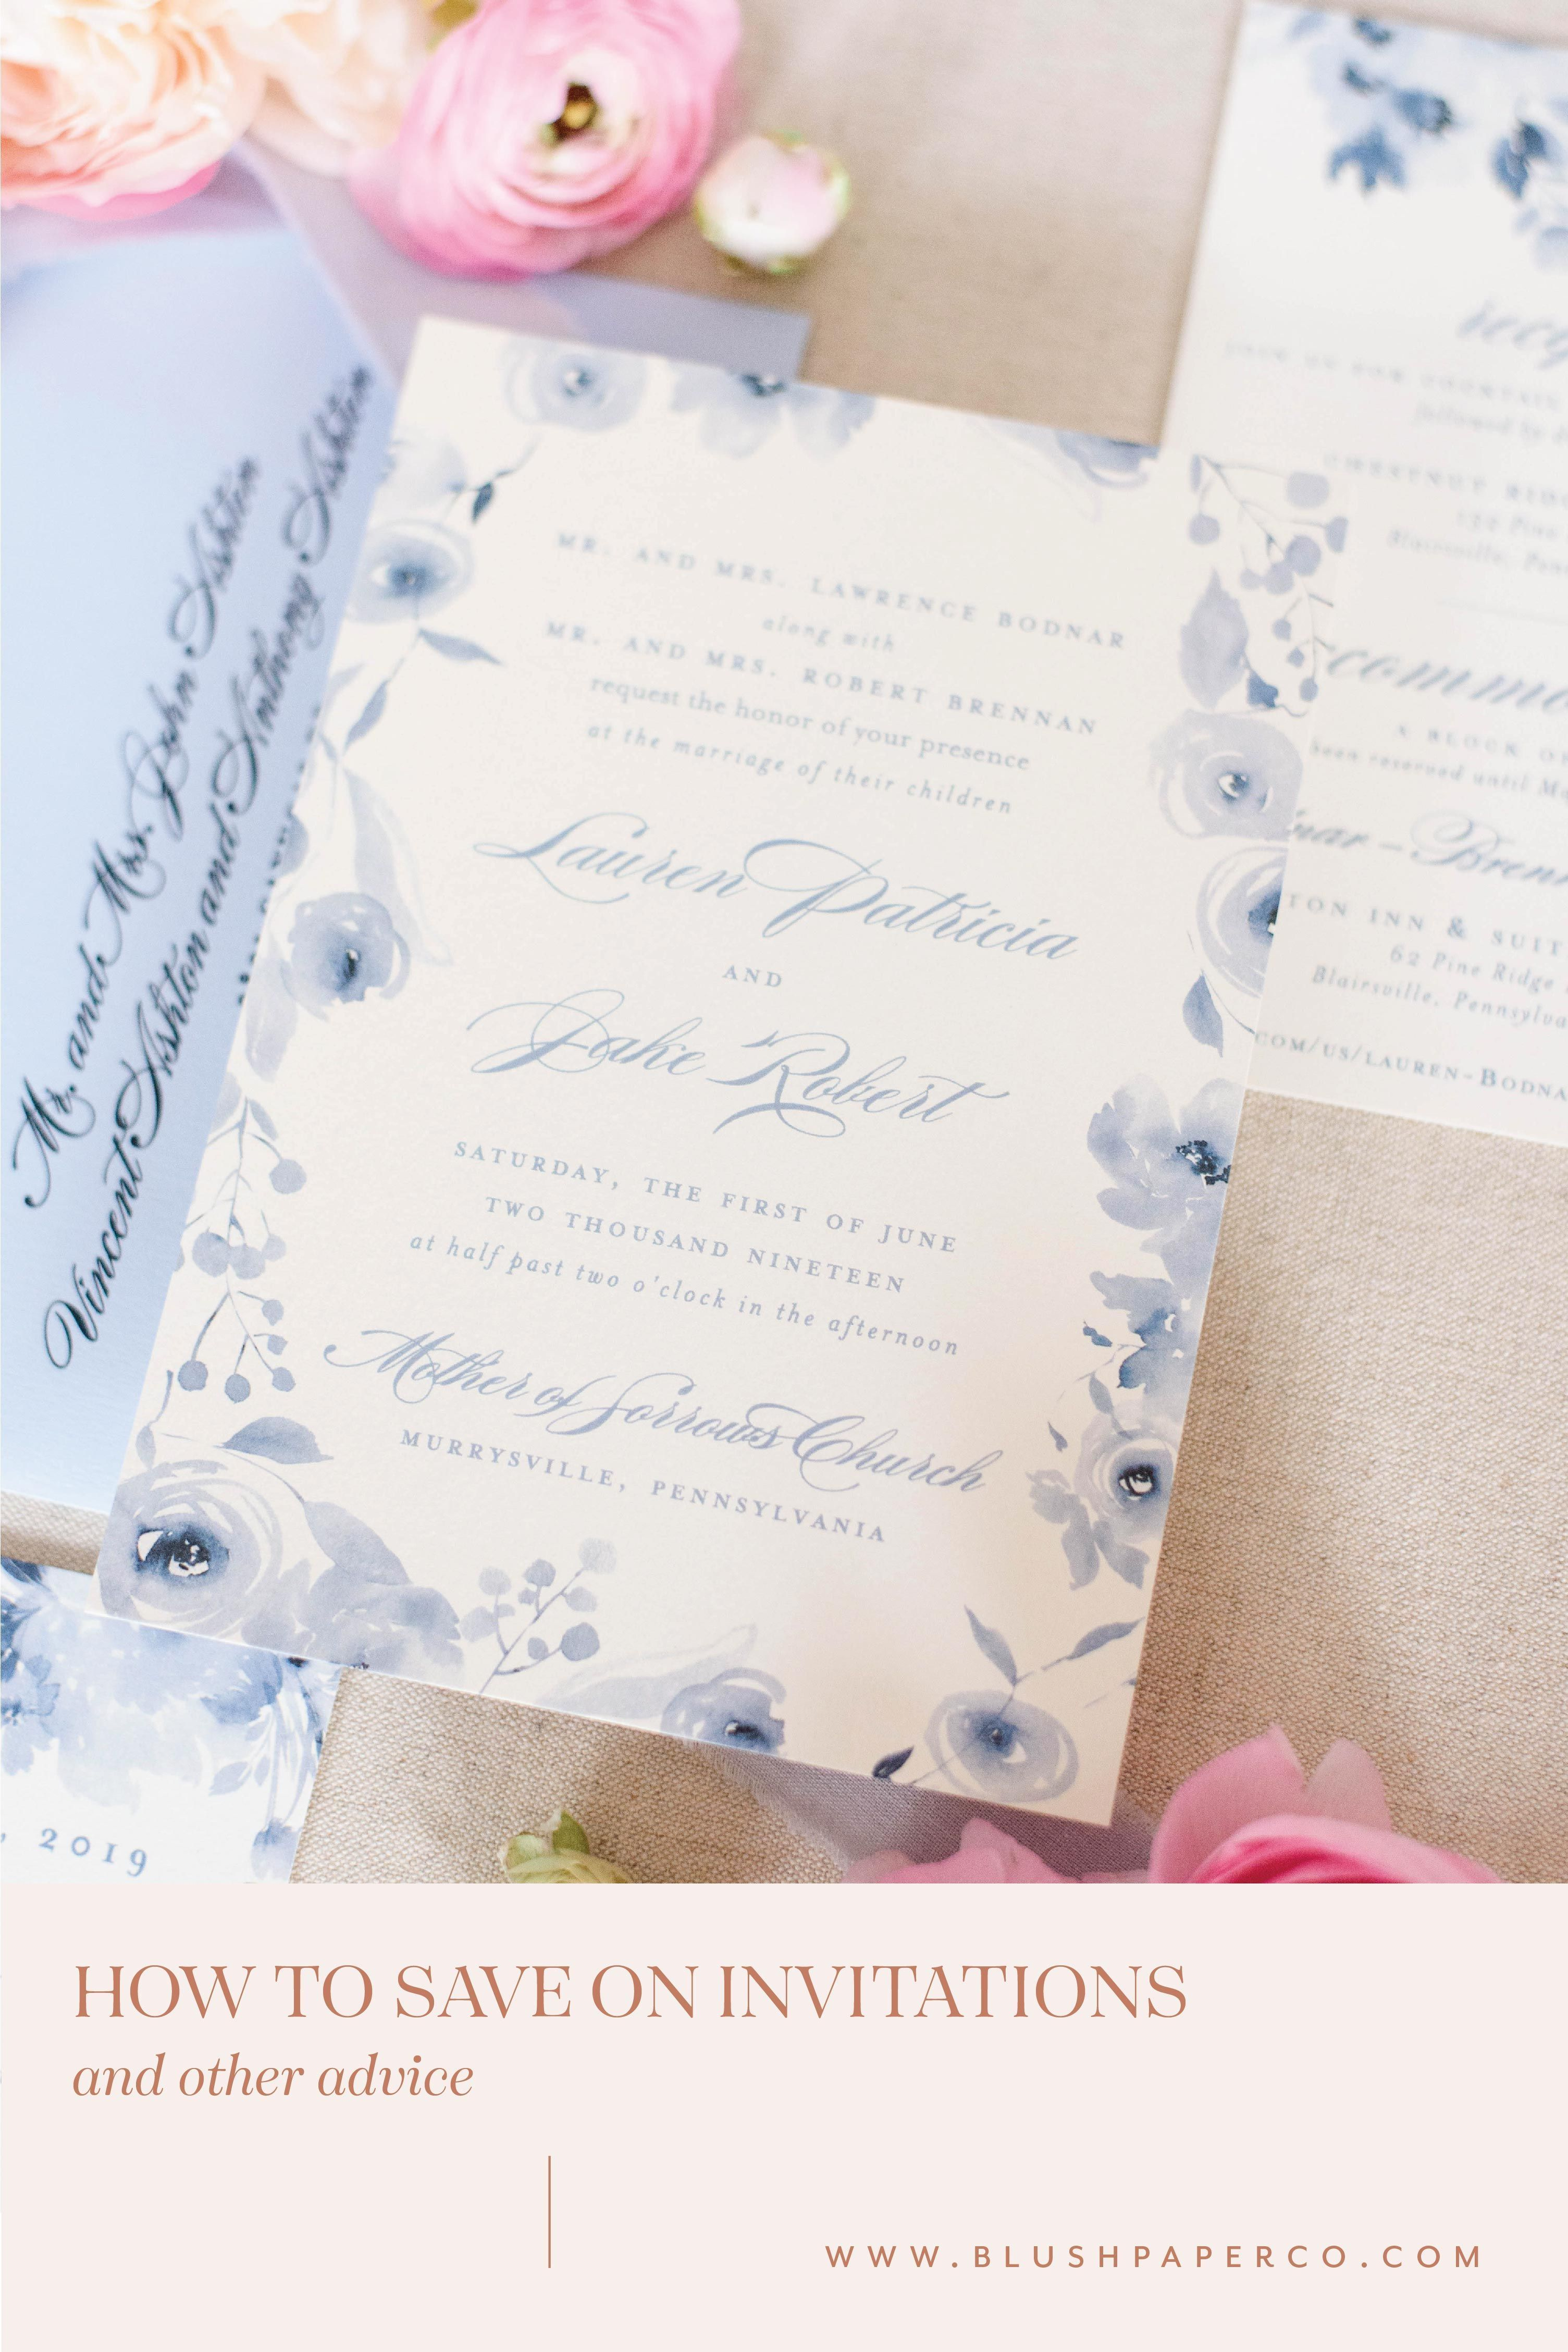 How To Make The Most Of Your Wedding Invitation Budget In 2020 Wedding Invitation Etiquette Wedding Invitations Budget Wedding Invitations